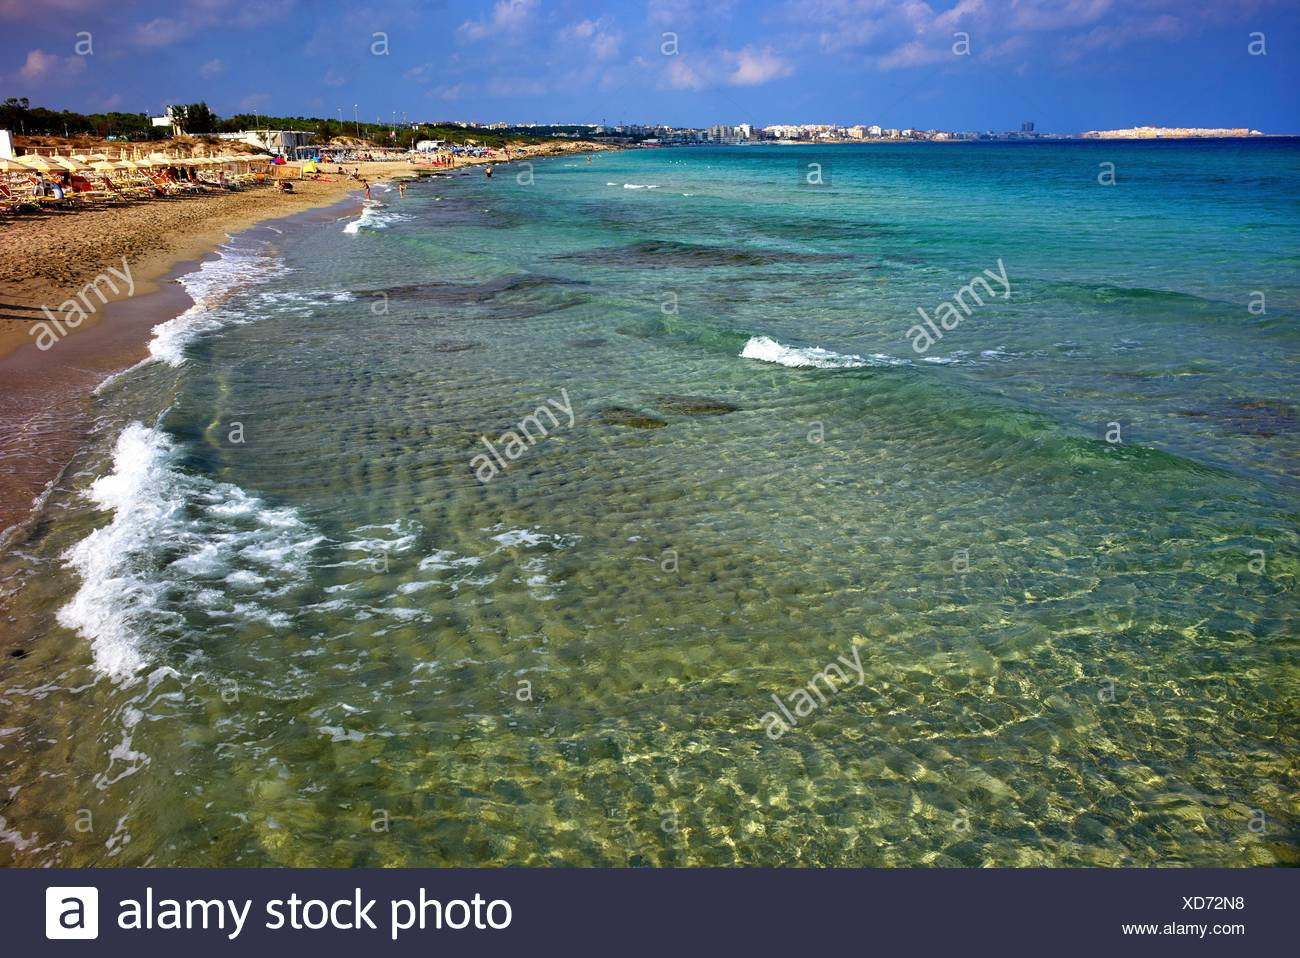 Gallipoli Bay Stock Photos & Gallipoli Bay Stock Images ...